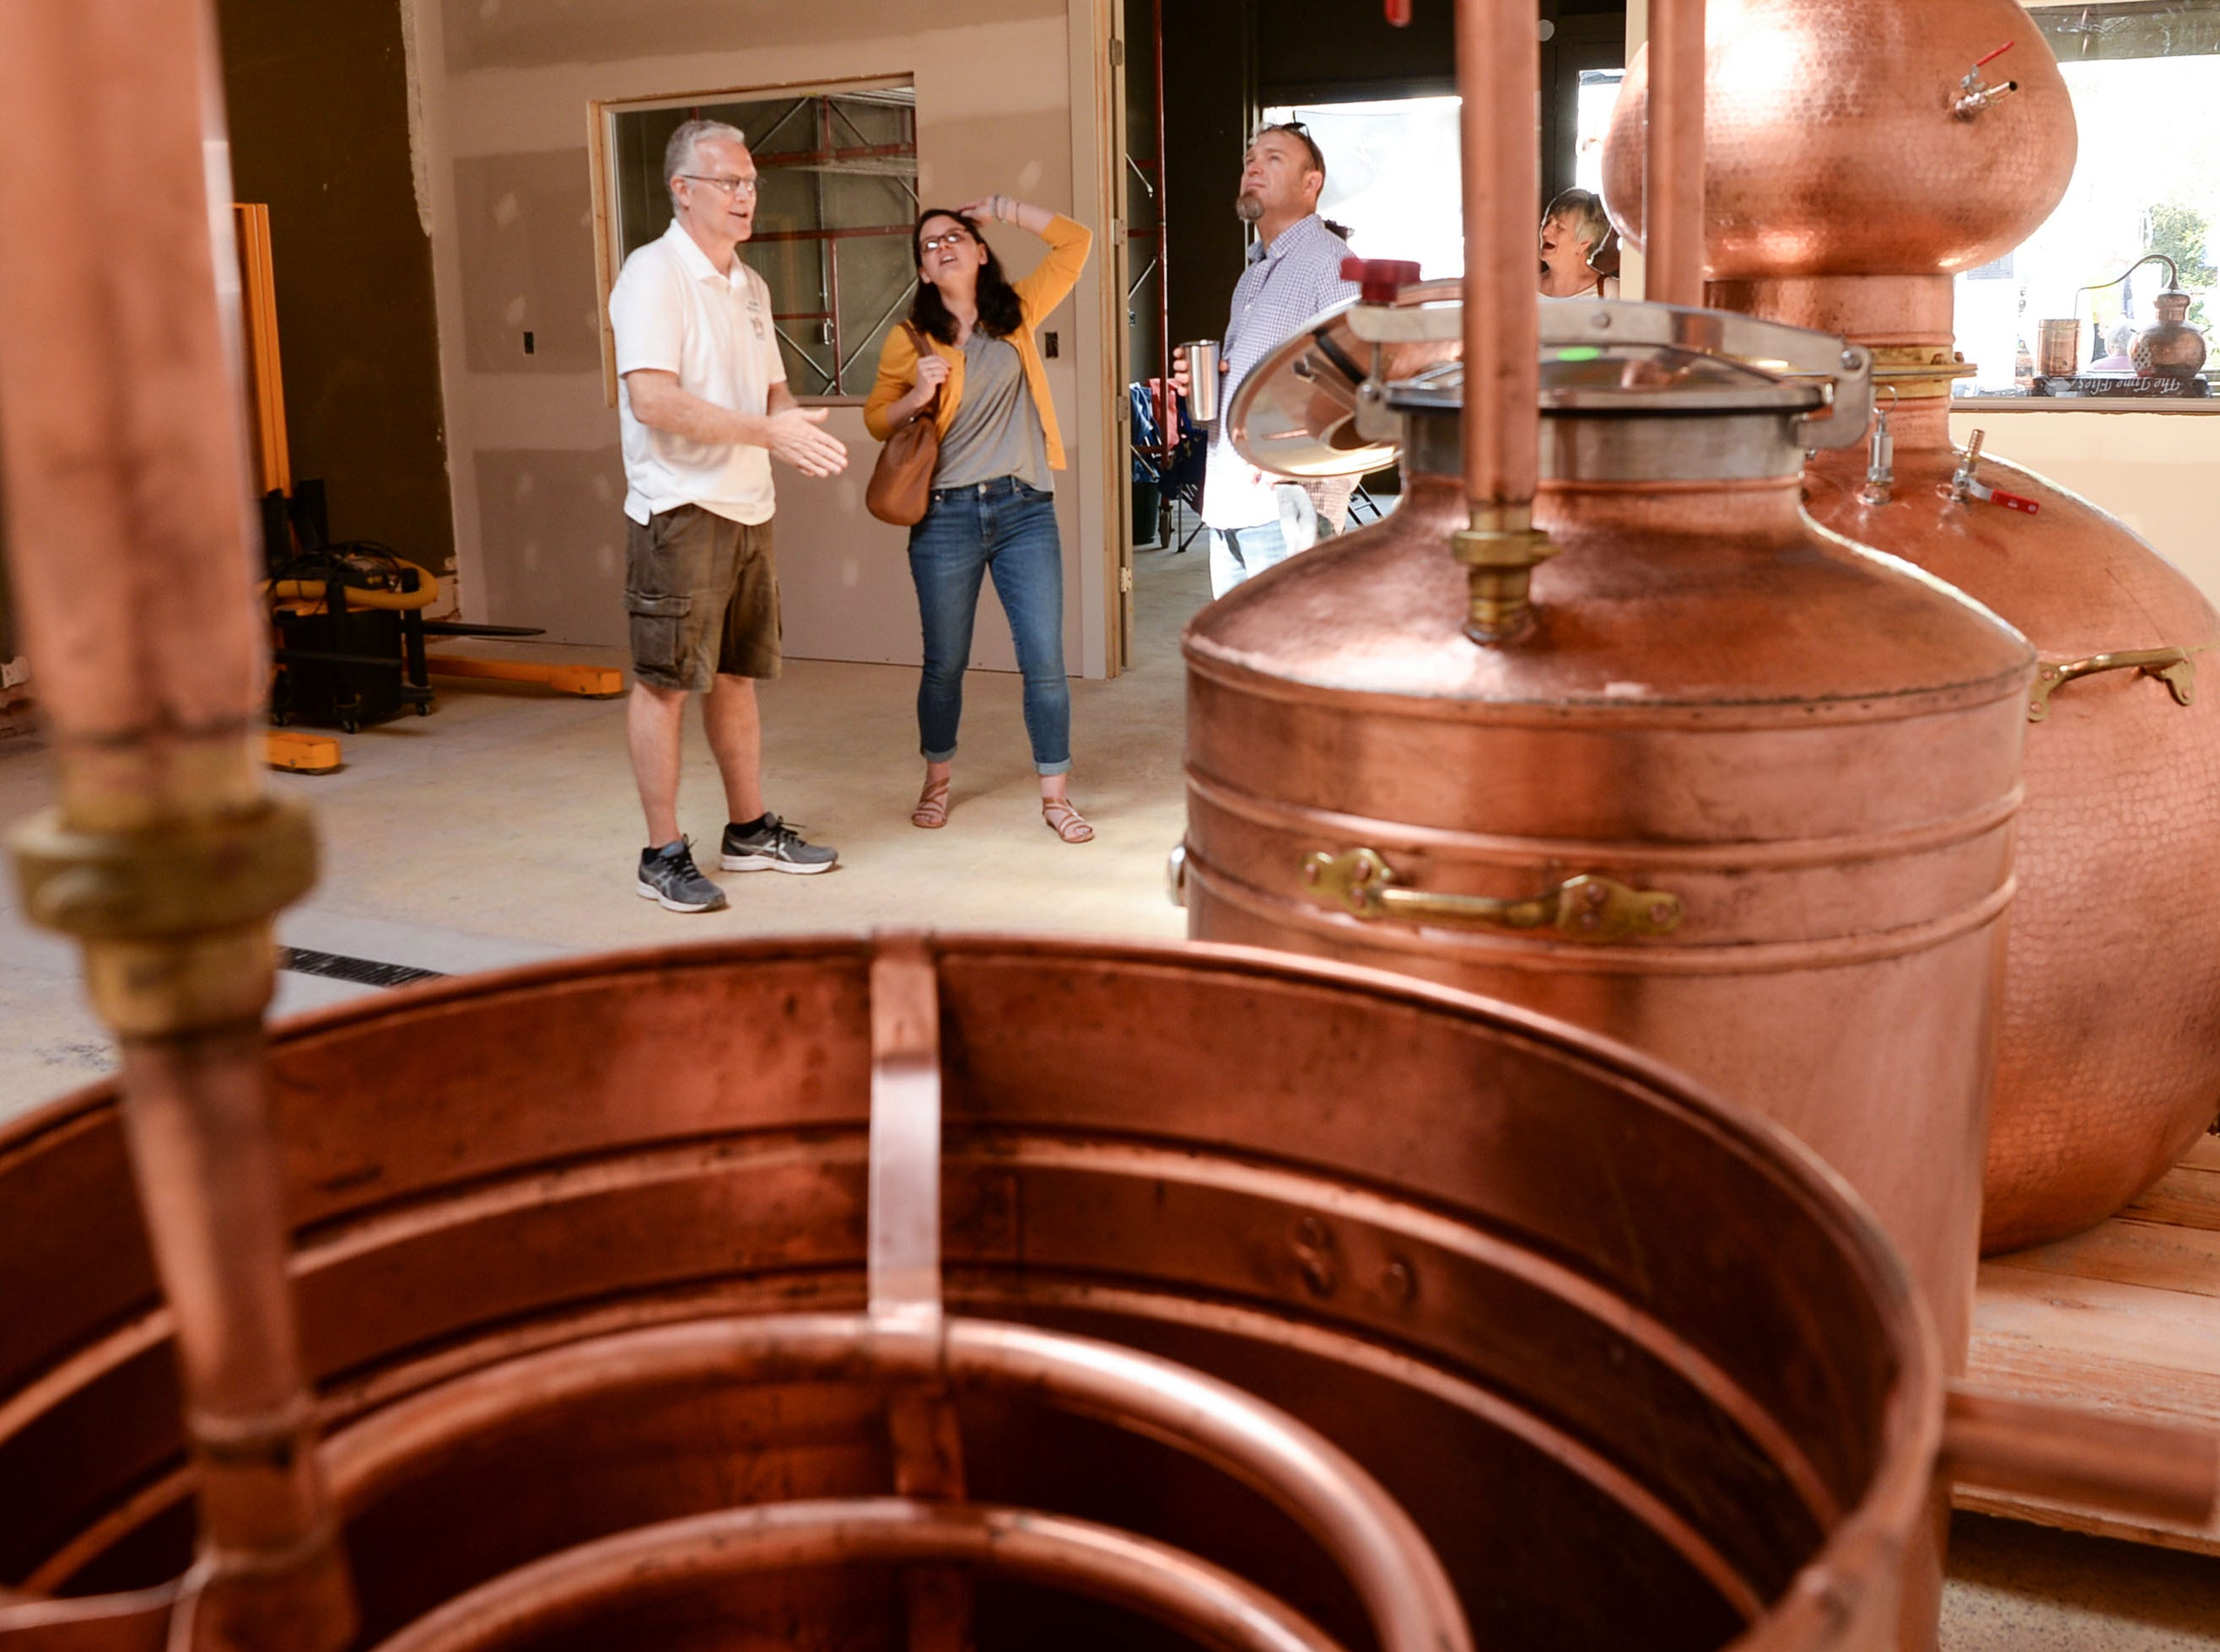 Ernie Wagner, co-owner of Swamp Fox Distilling, talks to visitors as the store prepares to open in a few months, on display during the Spring Jubilee in Historic Pendleton Saturday.